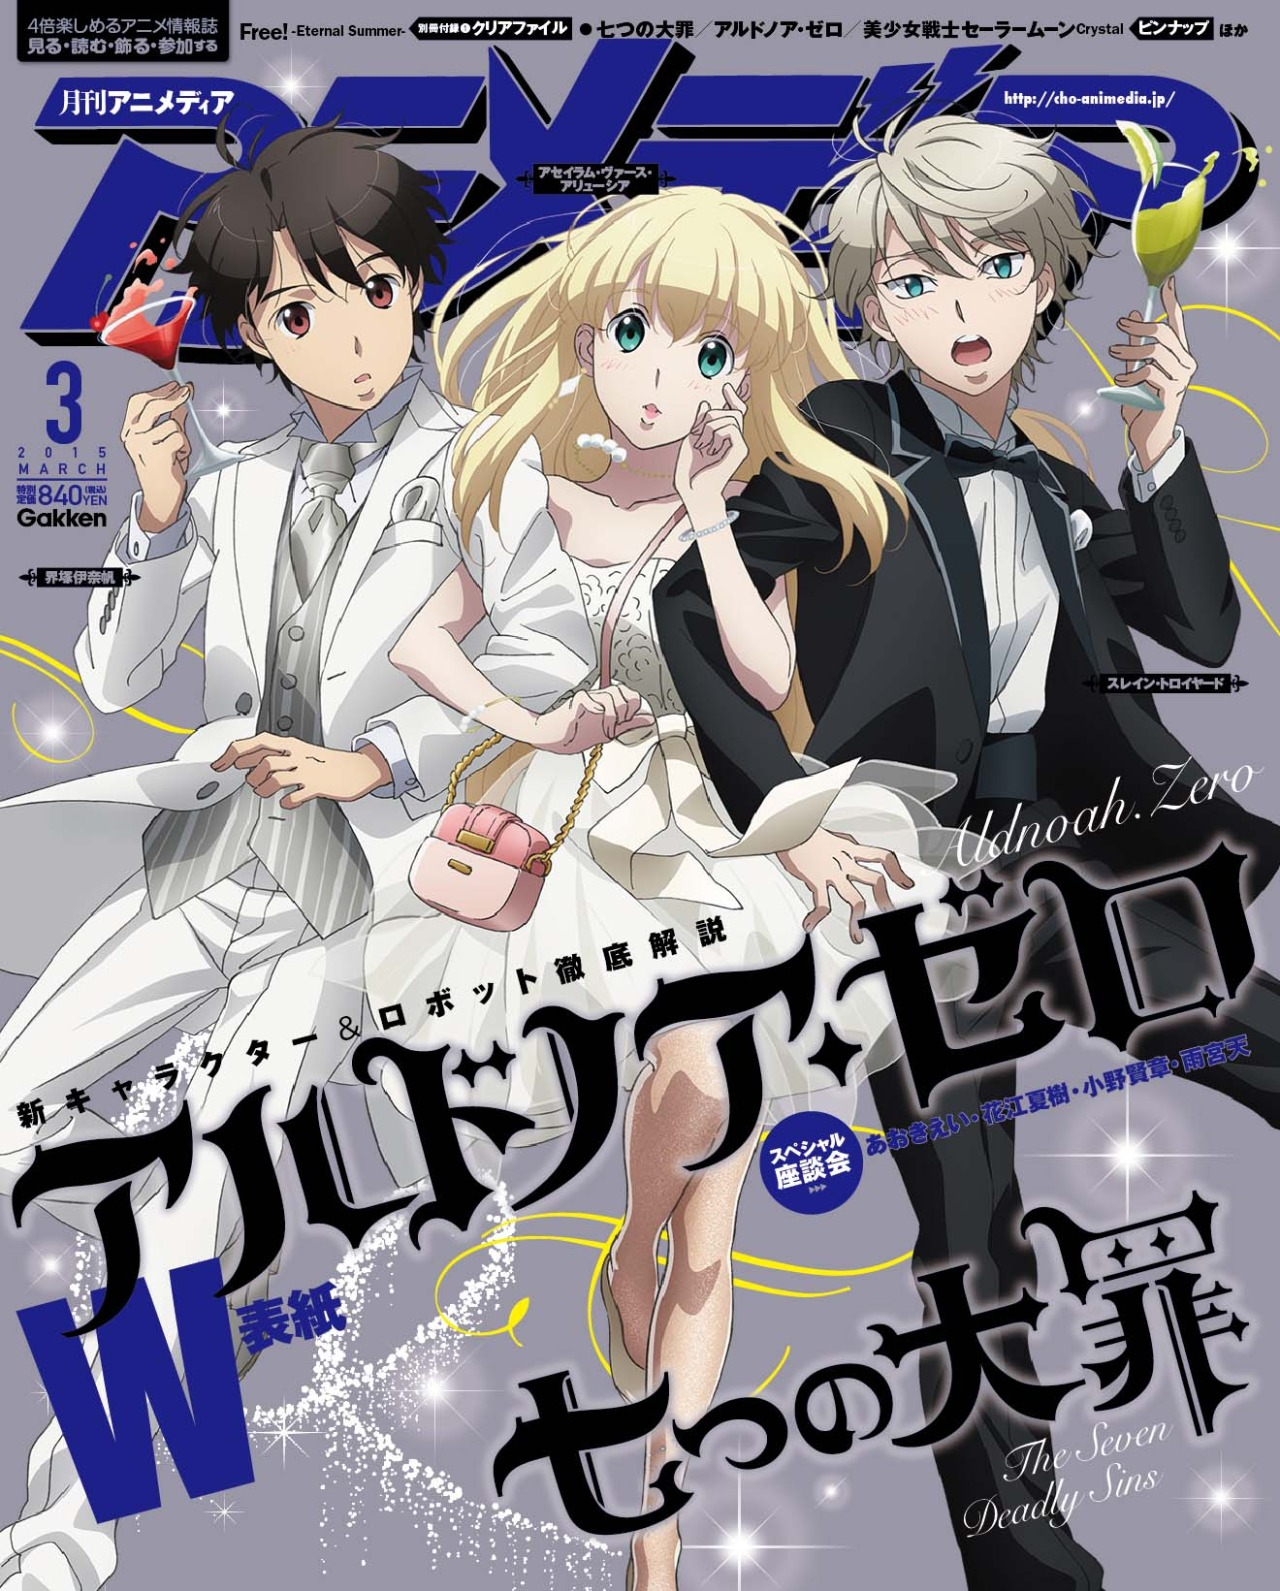 Animedia's-Latest-Issue-Becomes-Target-to-Japanese-Twitter-Followers_Haruhichan.com